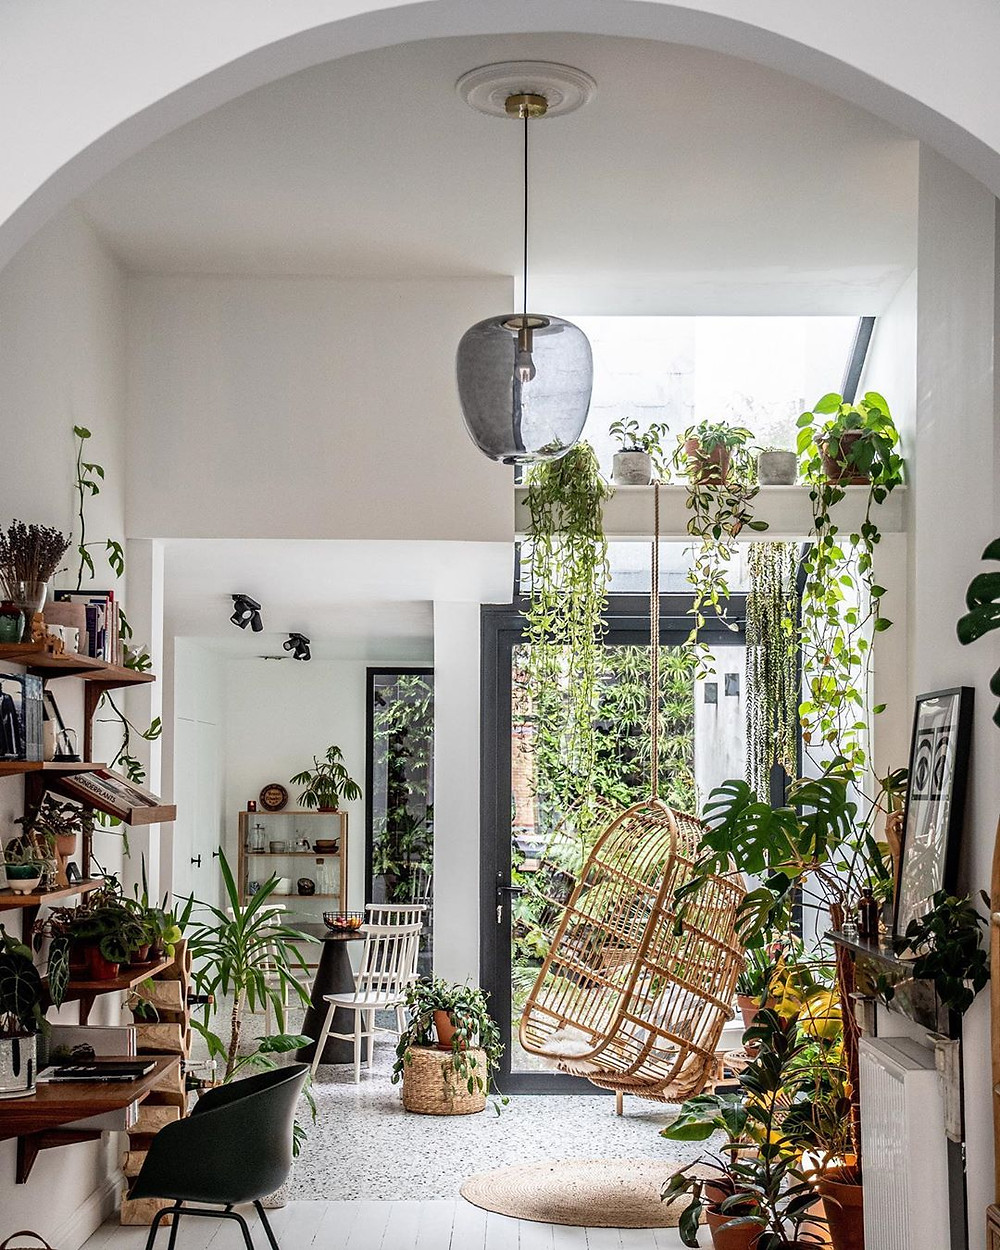 Hilton Carter's plant filled home with rattan hanging chair and stunning interiors